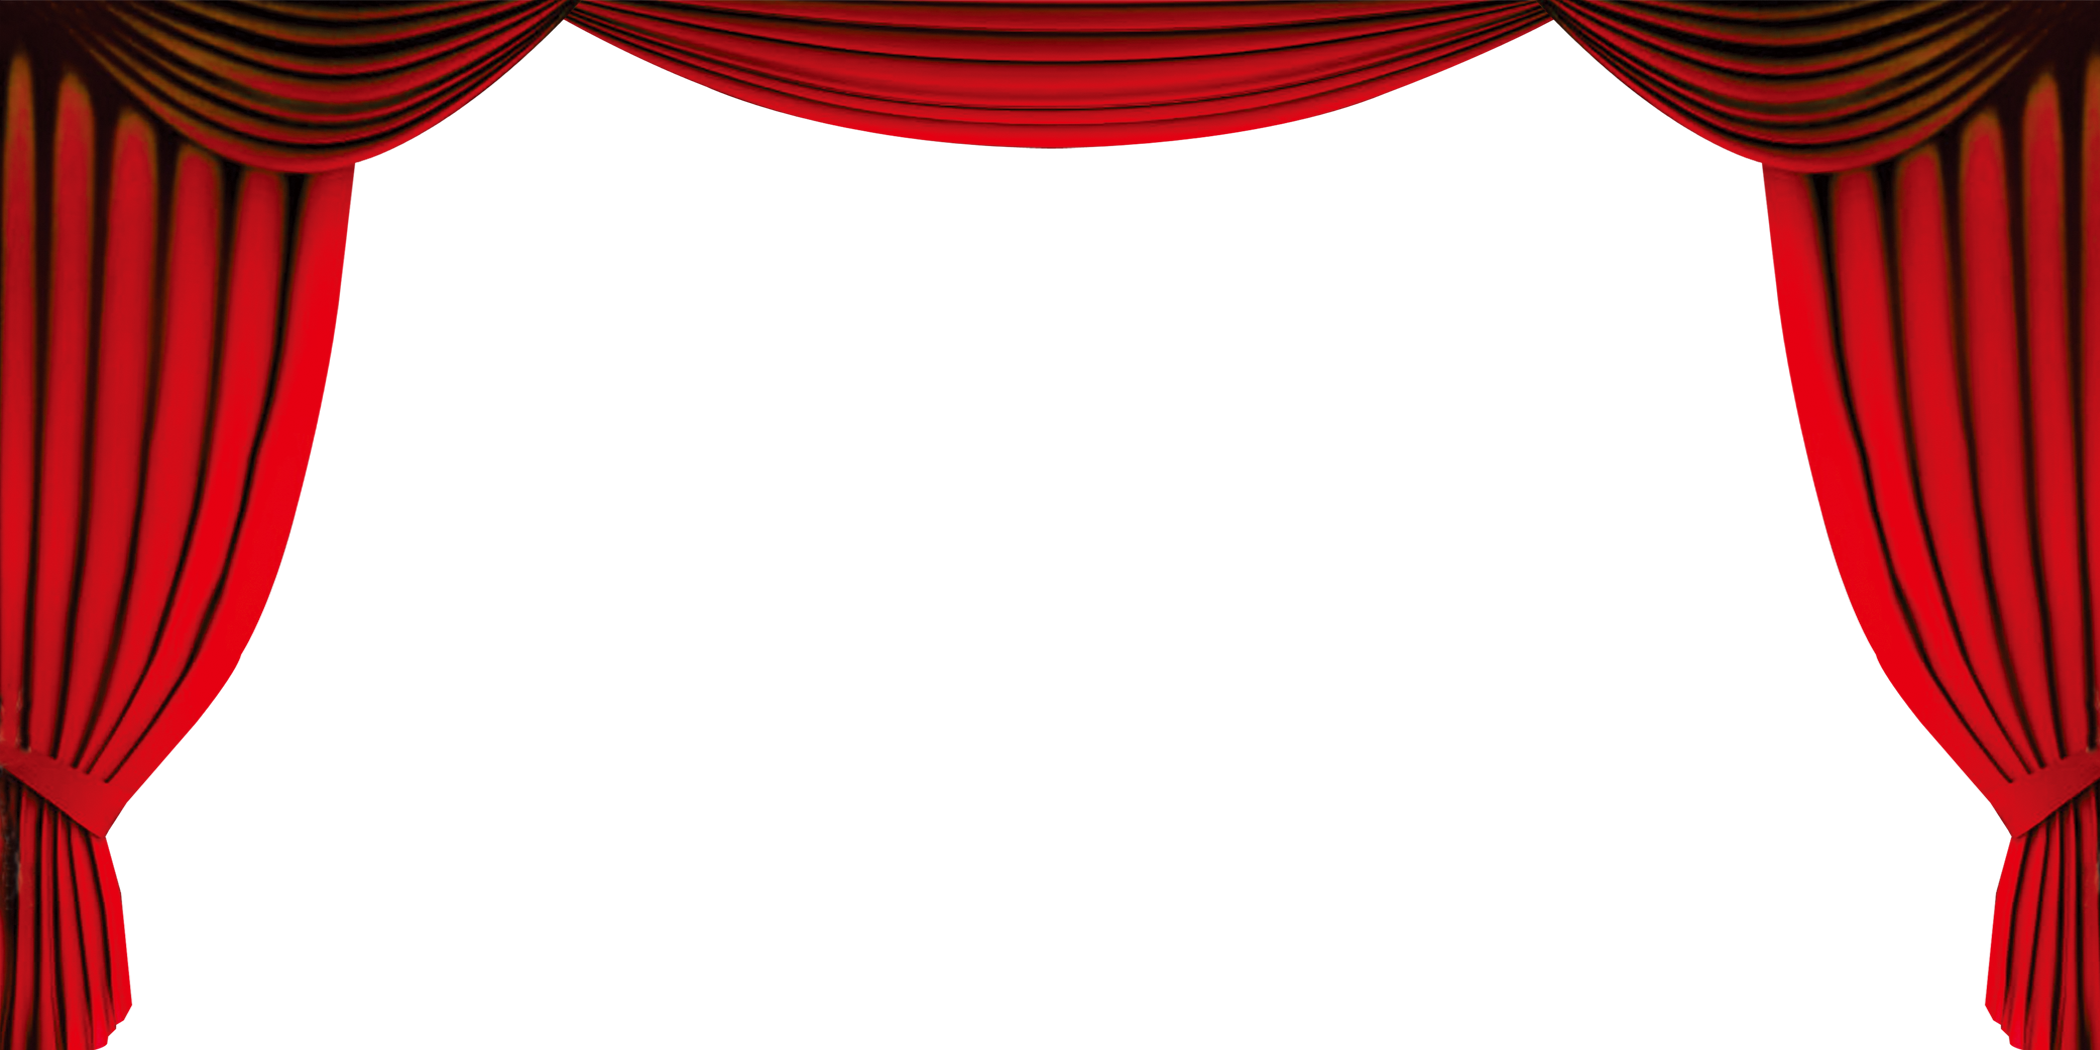 banner transparent Curtain clipart. Red gold clip art